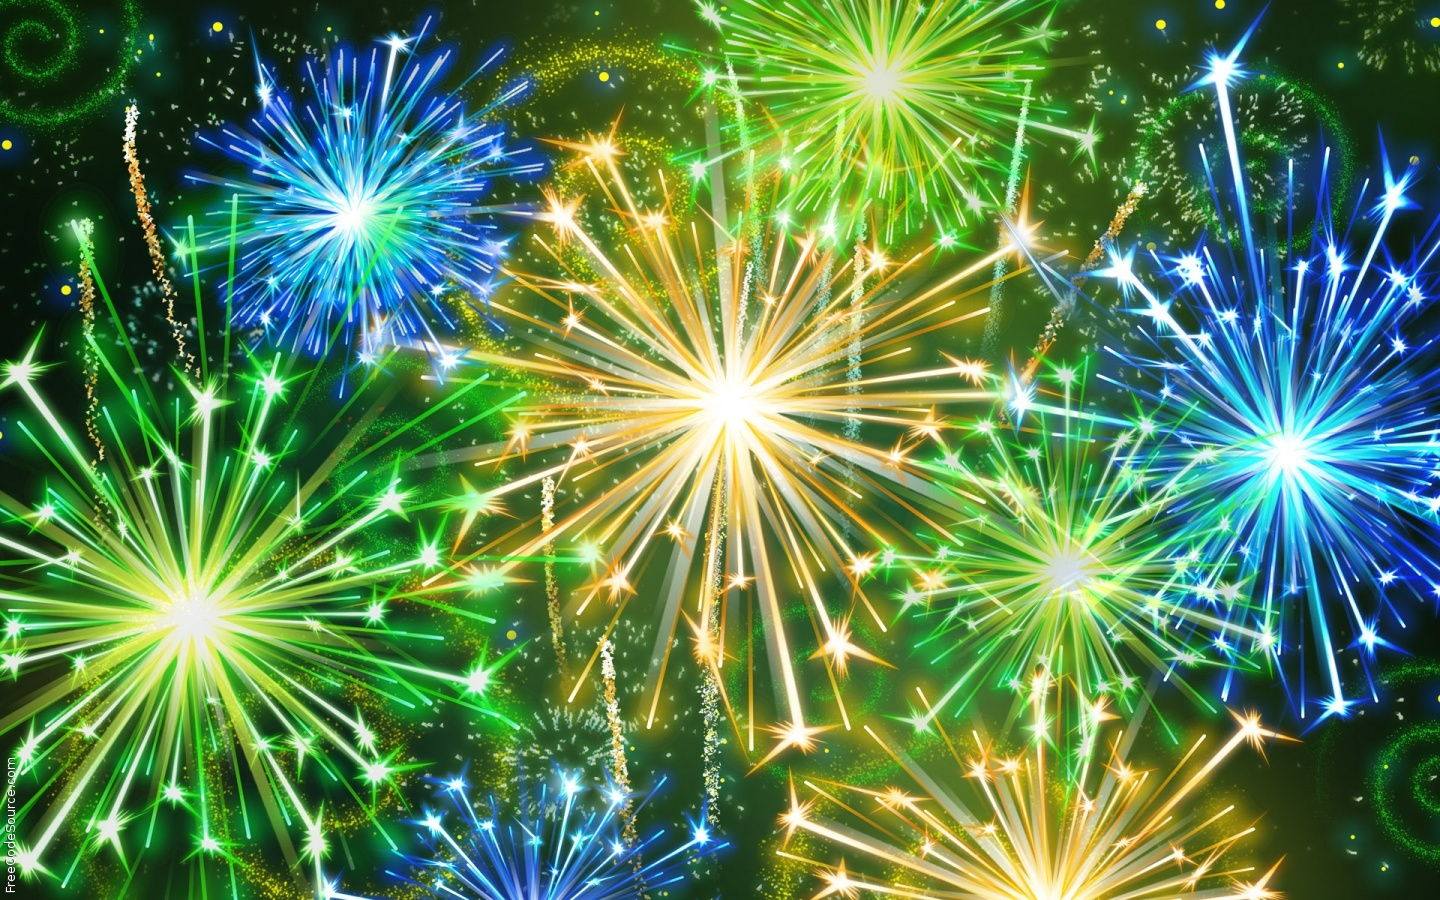 blue, yellow and green fireworks